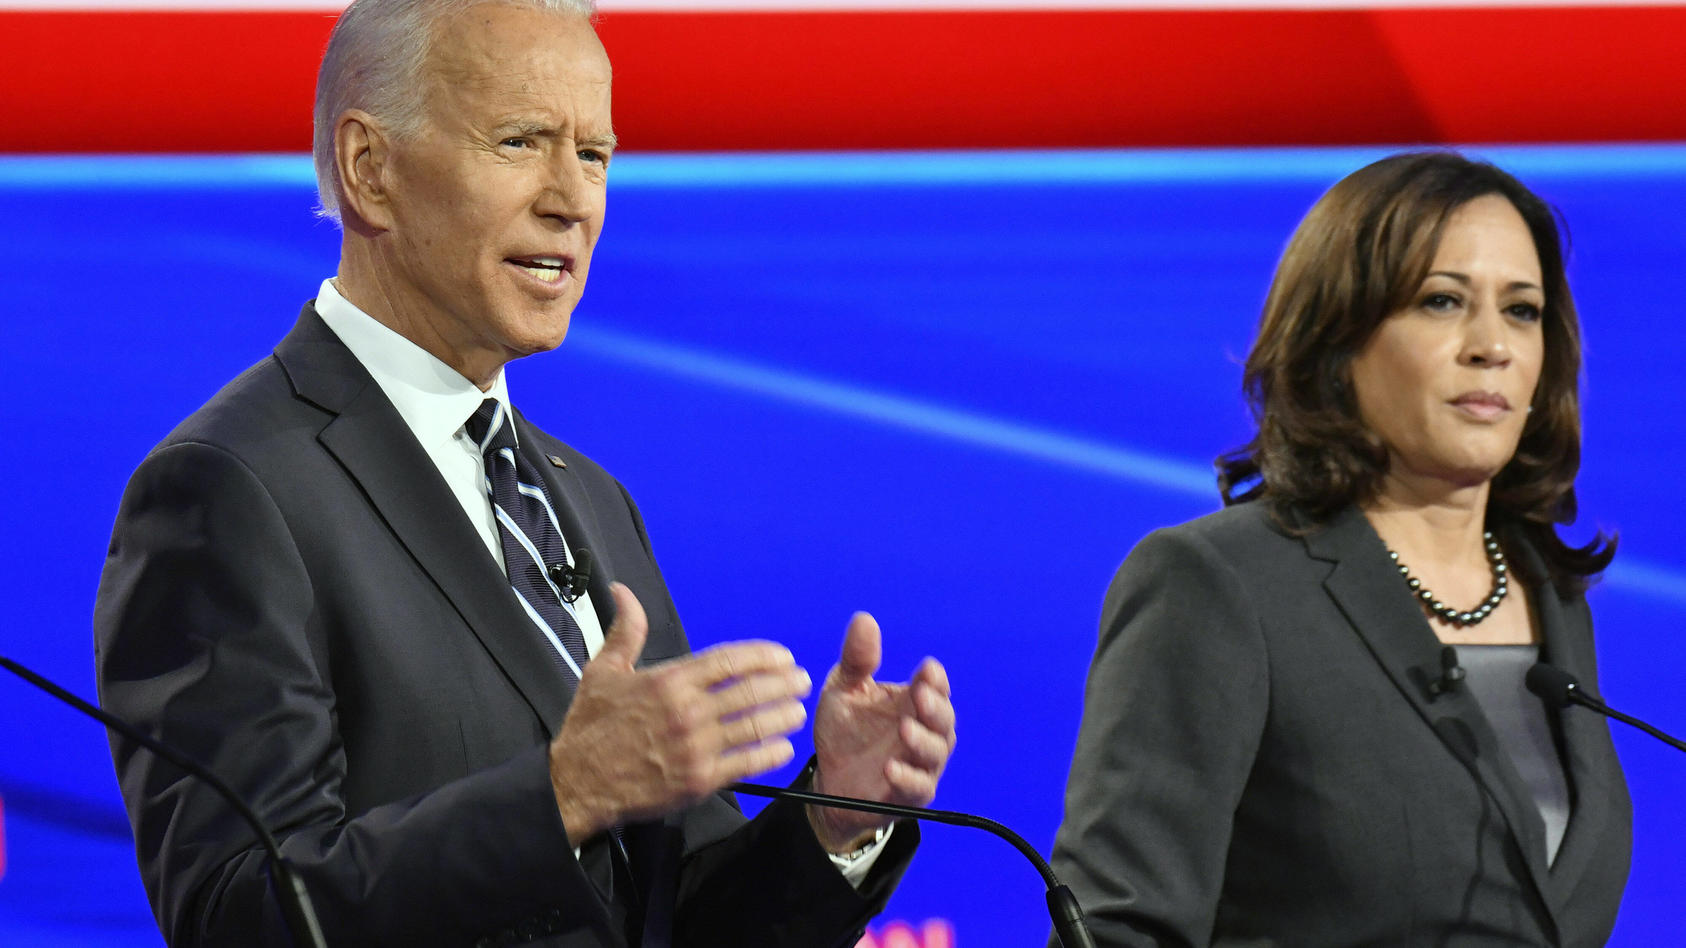 Democratic presidential candidate Joe Biden announced today that he has chosen Sen. Kamala Harris, D-Calif., as his run